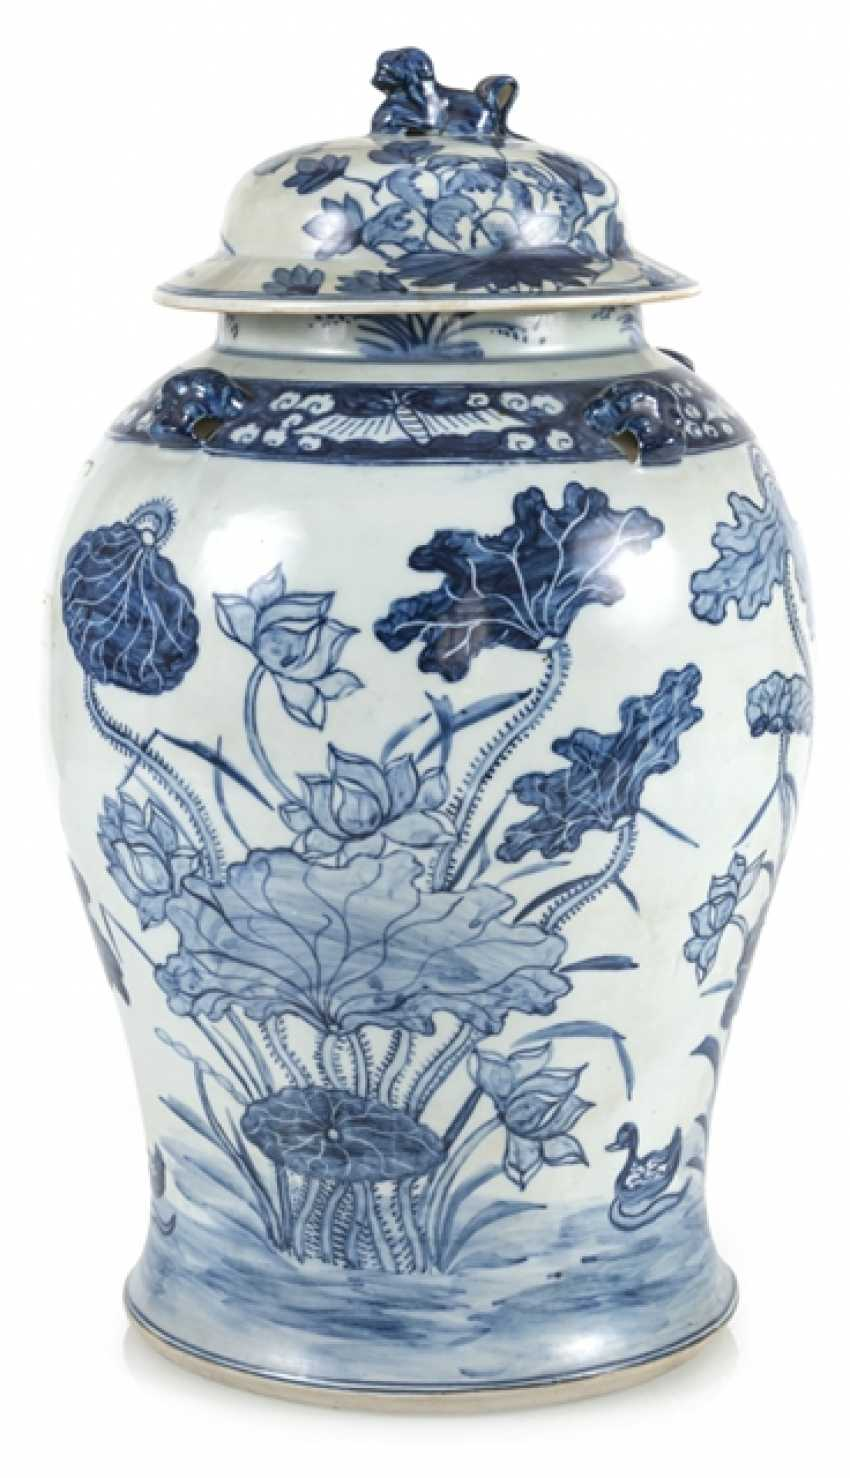 Lid vase of porcelain with floral decor - photo 1